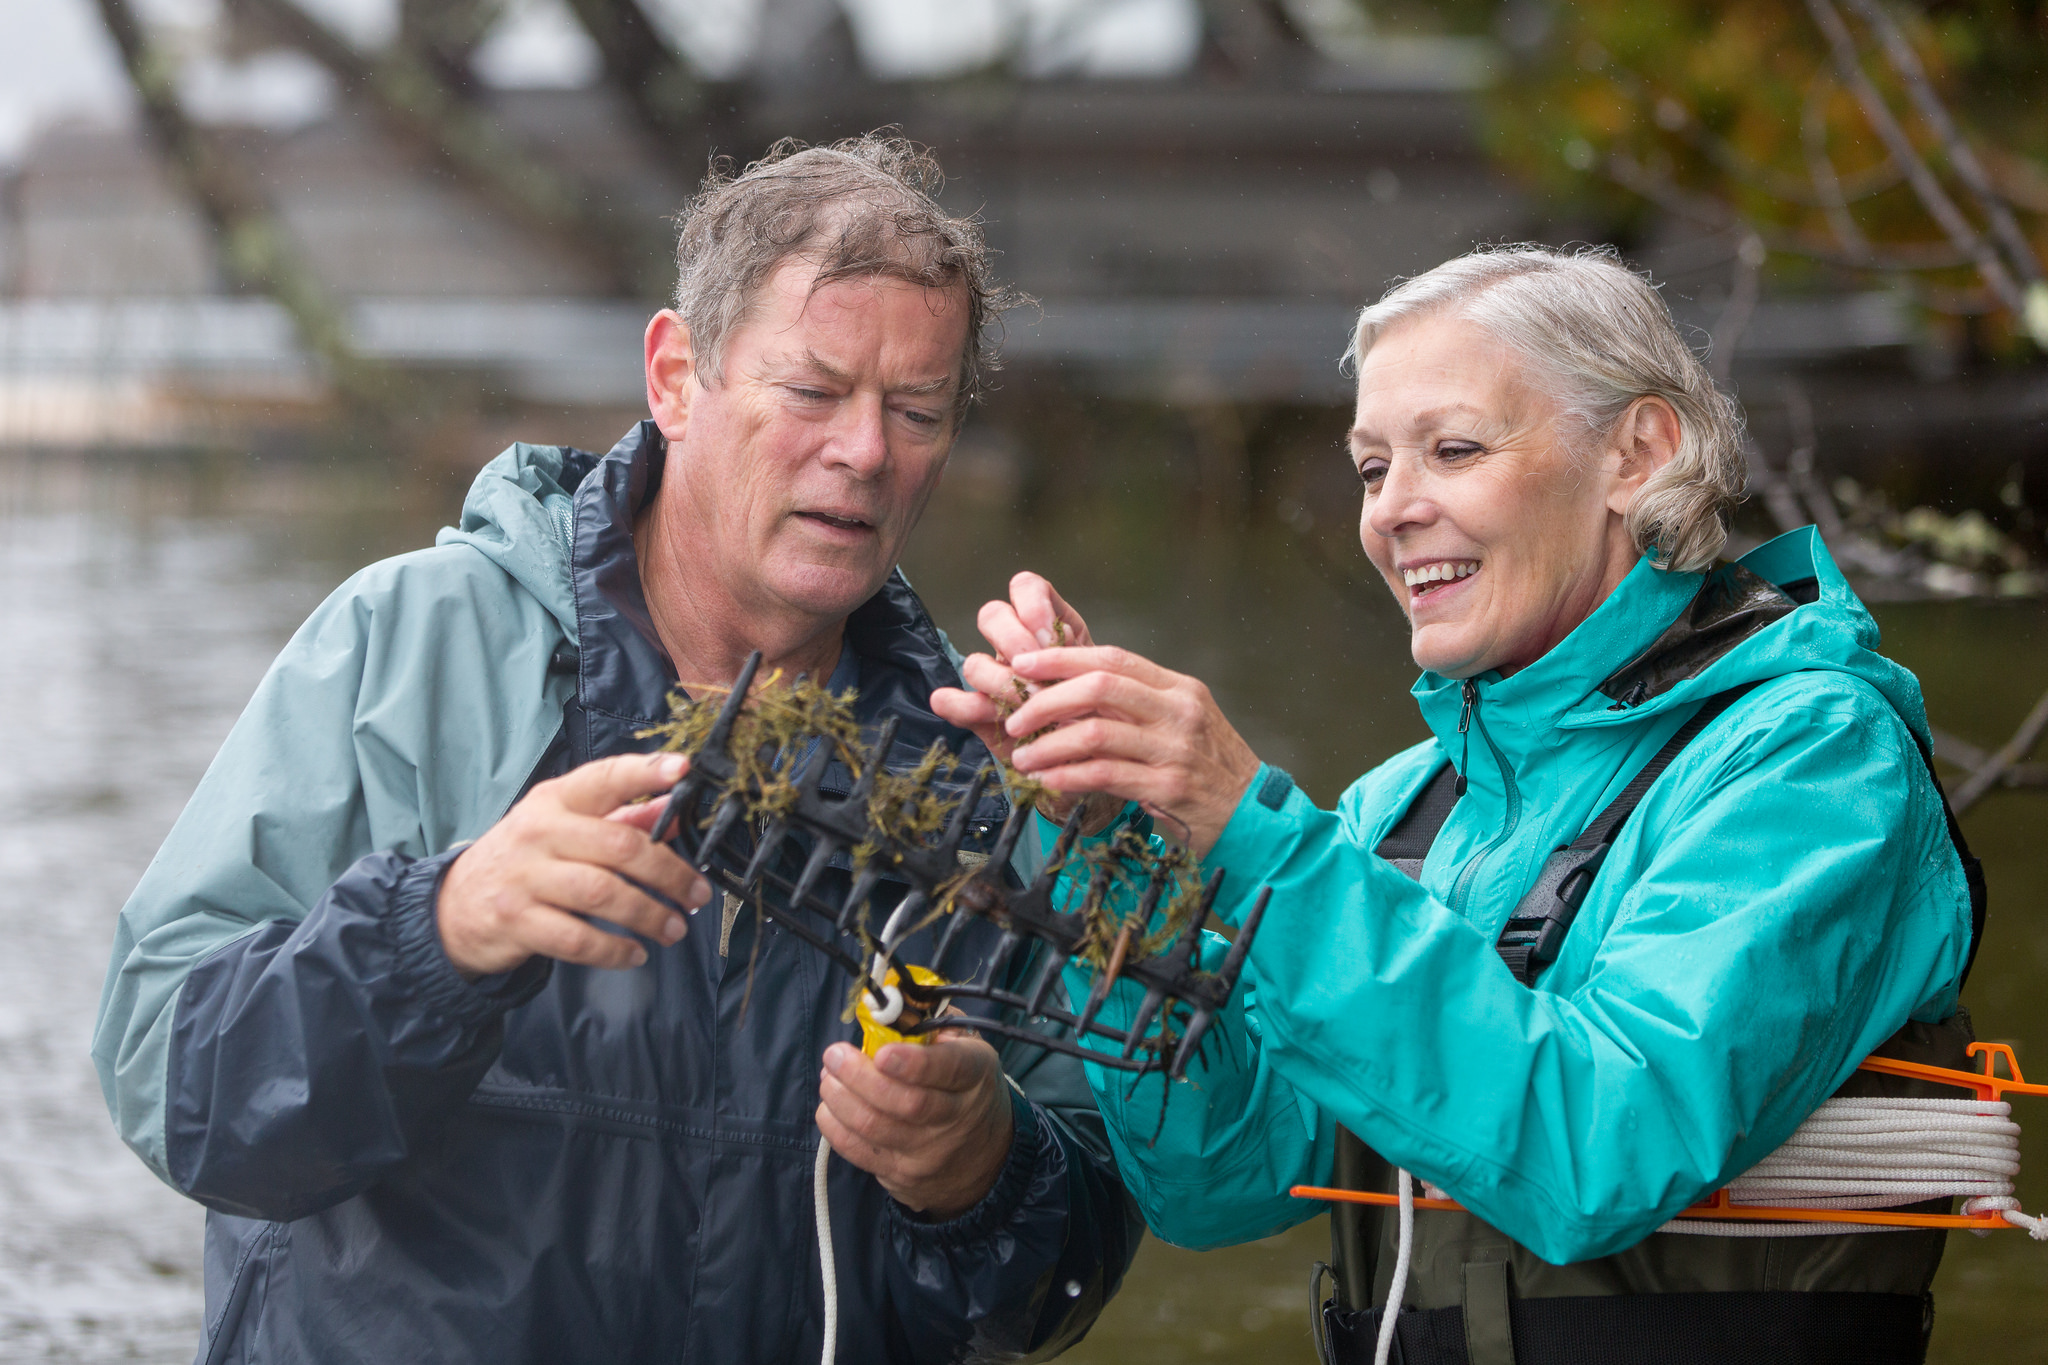 AIS Detectors. Two researchers examine plant material that has been scooped up on a rake-like device.